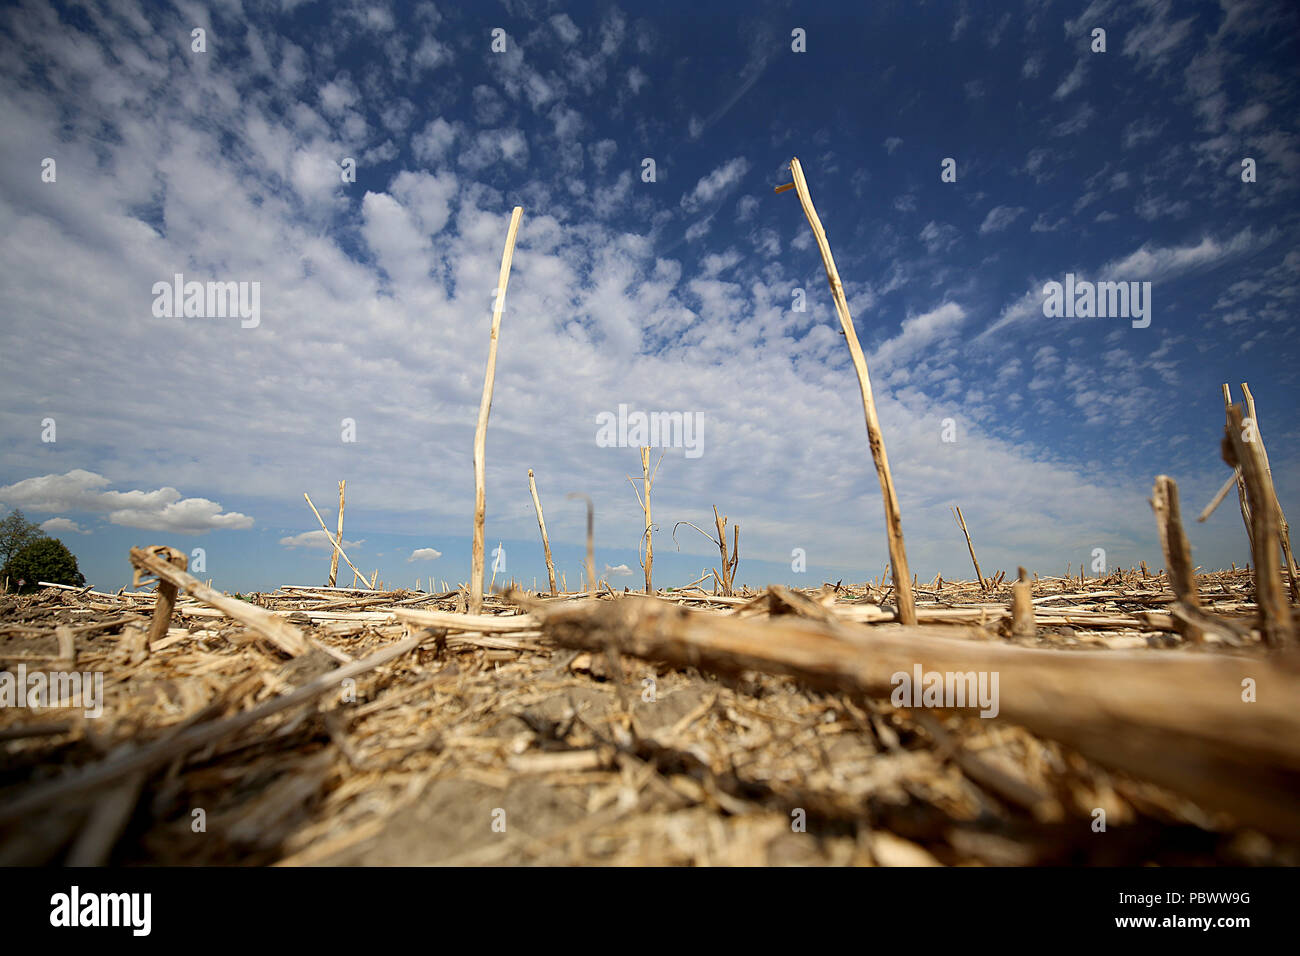 27.07.2018, Germany, Cologne: Dried-up stalks tower into the sky on a harvested field near Cologne. The persistent drought is causing farmers considerable problems.  The hot and dry weather bothers the farmers and leads to crop failures. Photo: Oliver Berg/dpa - Stock Image